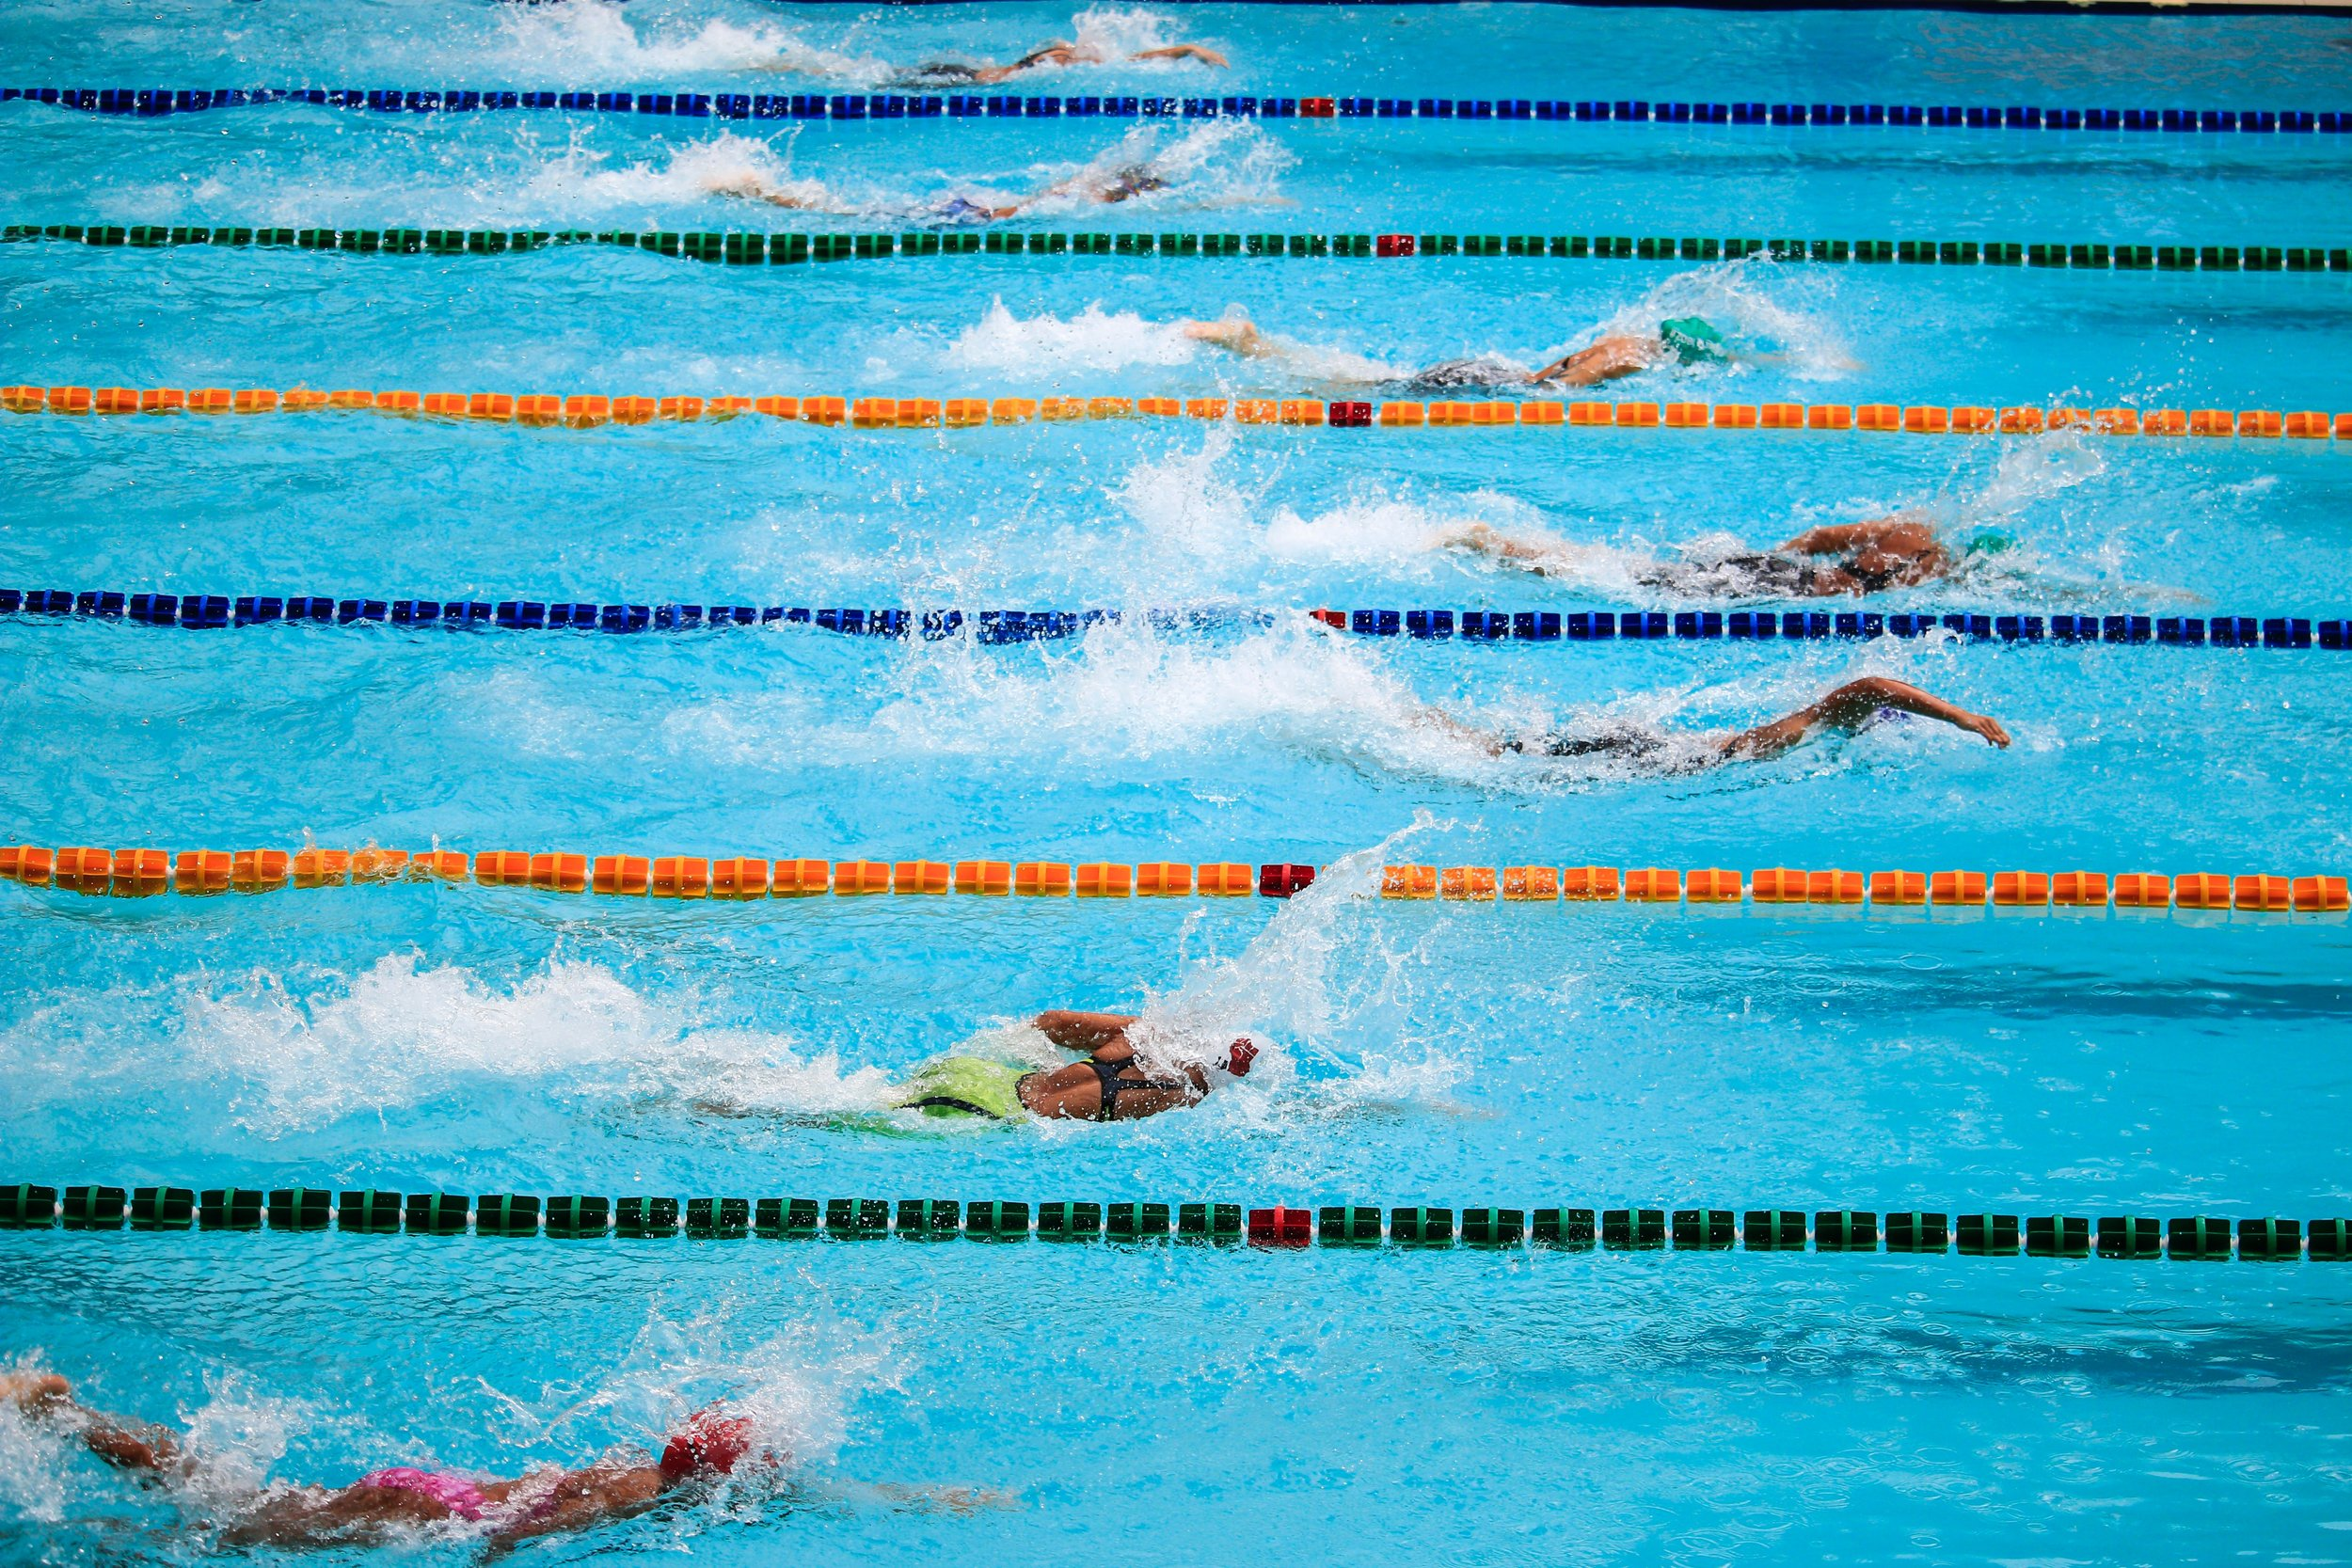 swimming-performance-strength-training-effect